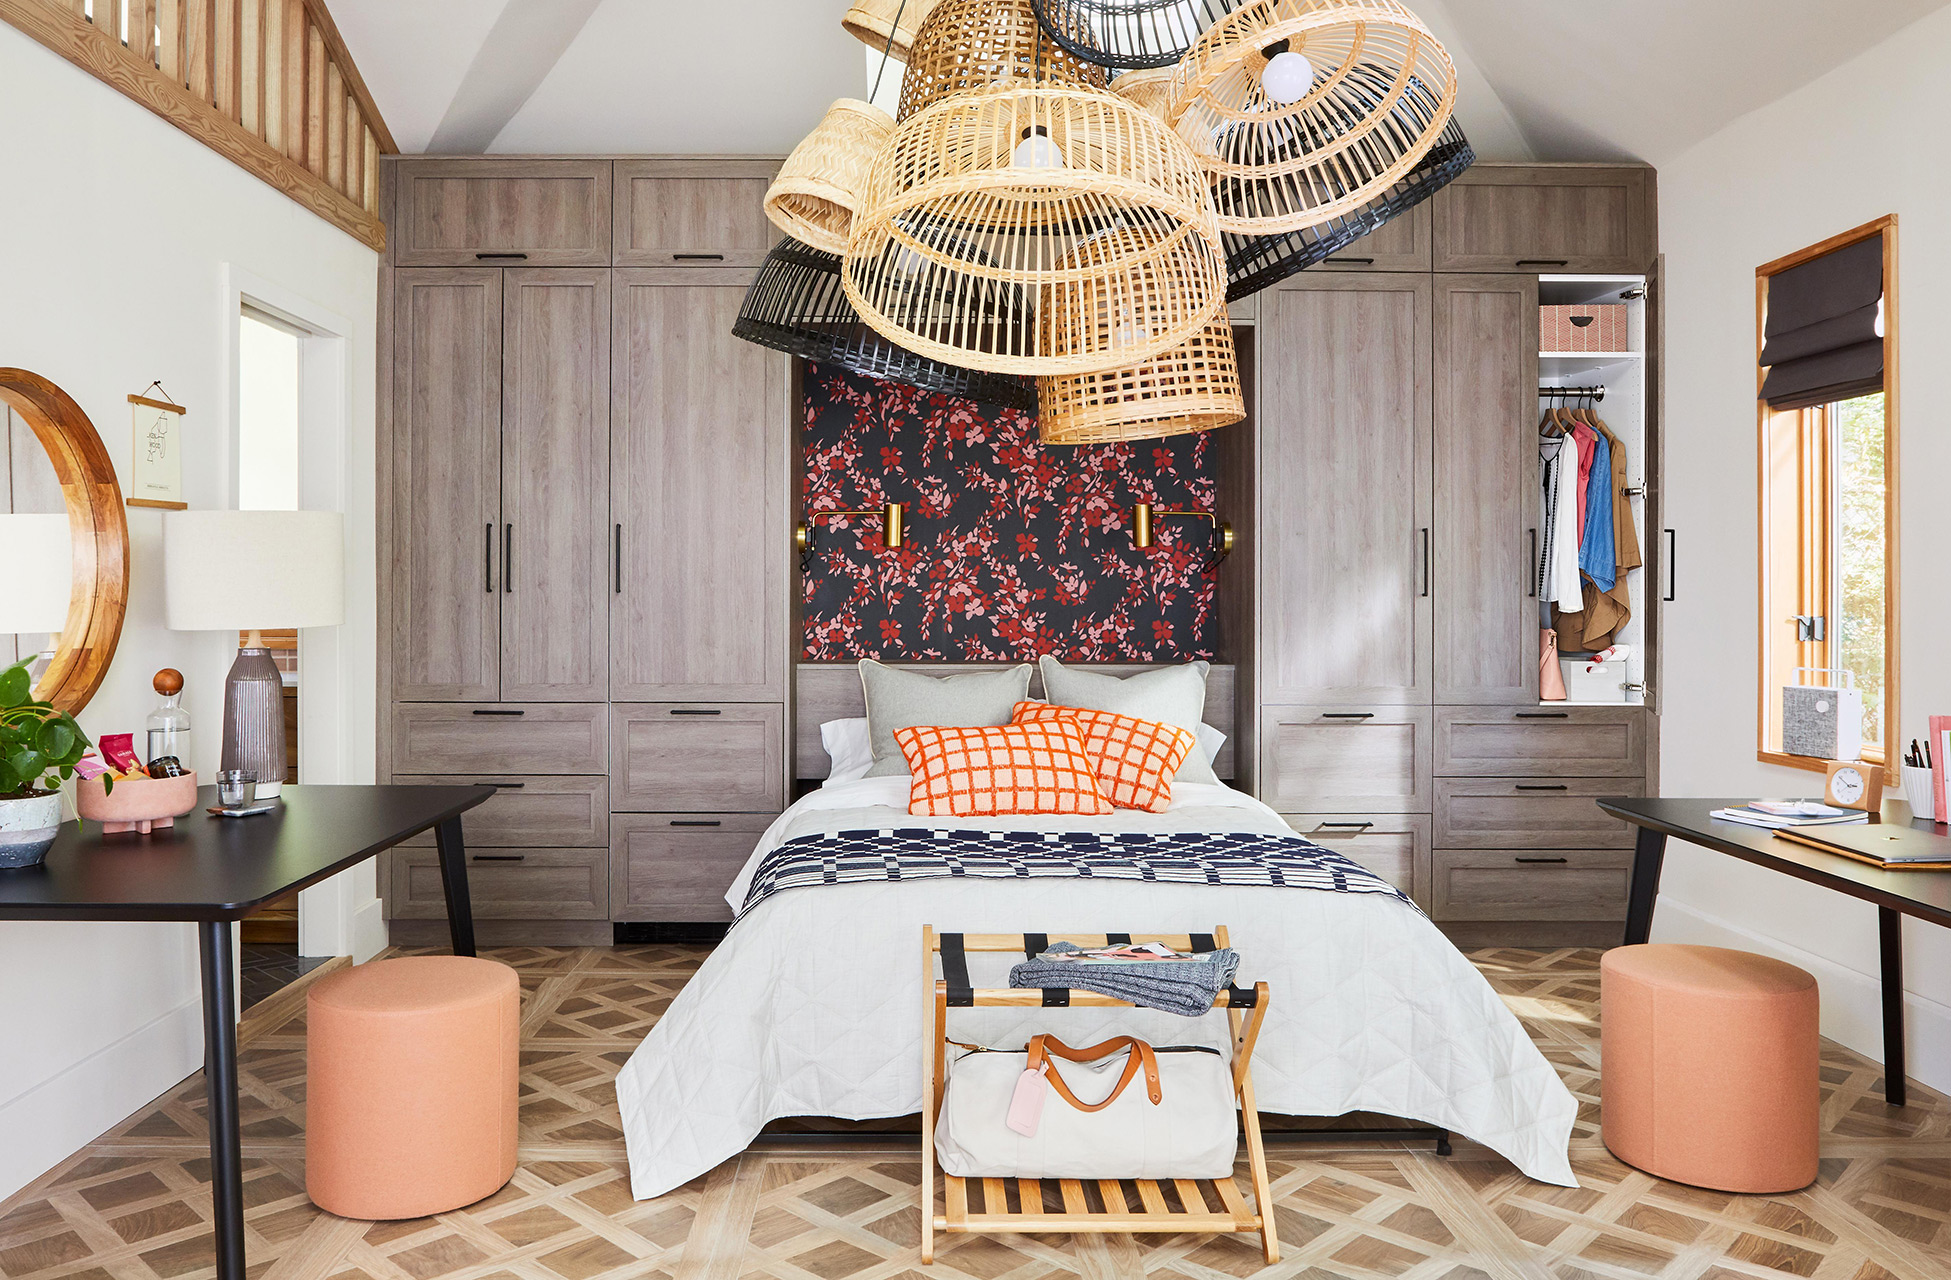 How One Family Turned Their Backyard Studio Into a Multiuse Guest Suite